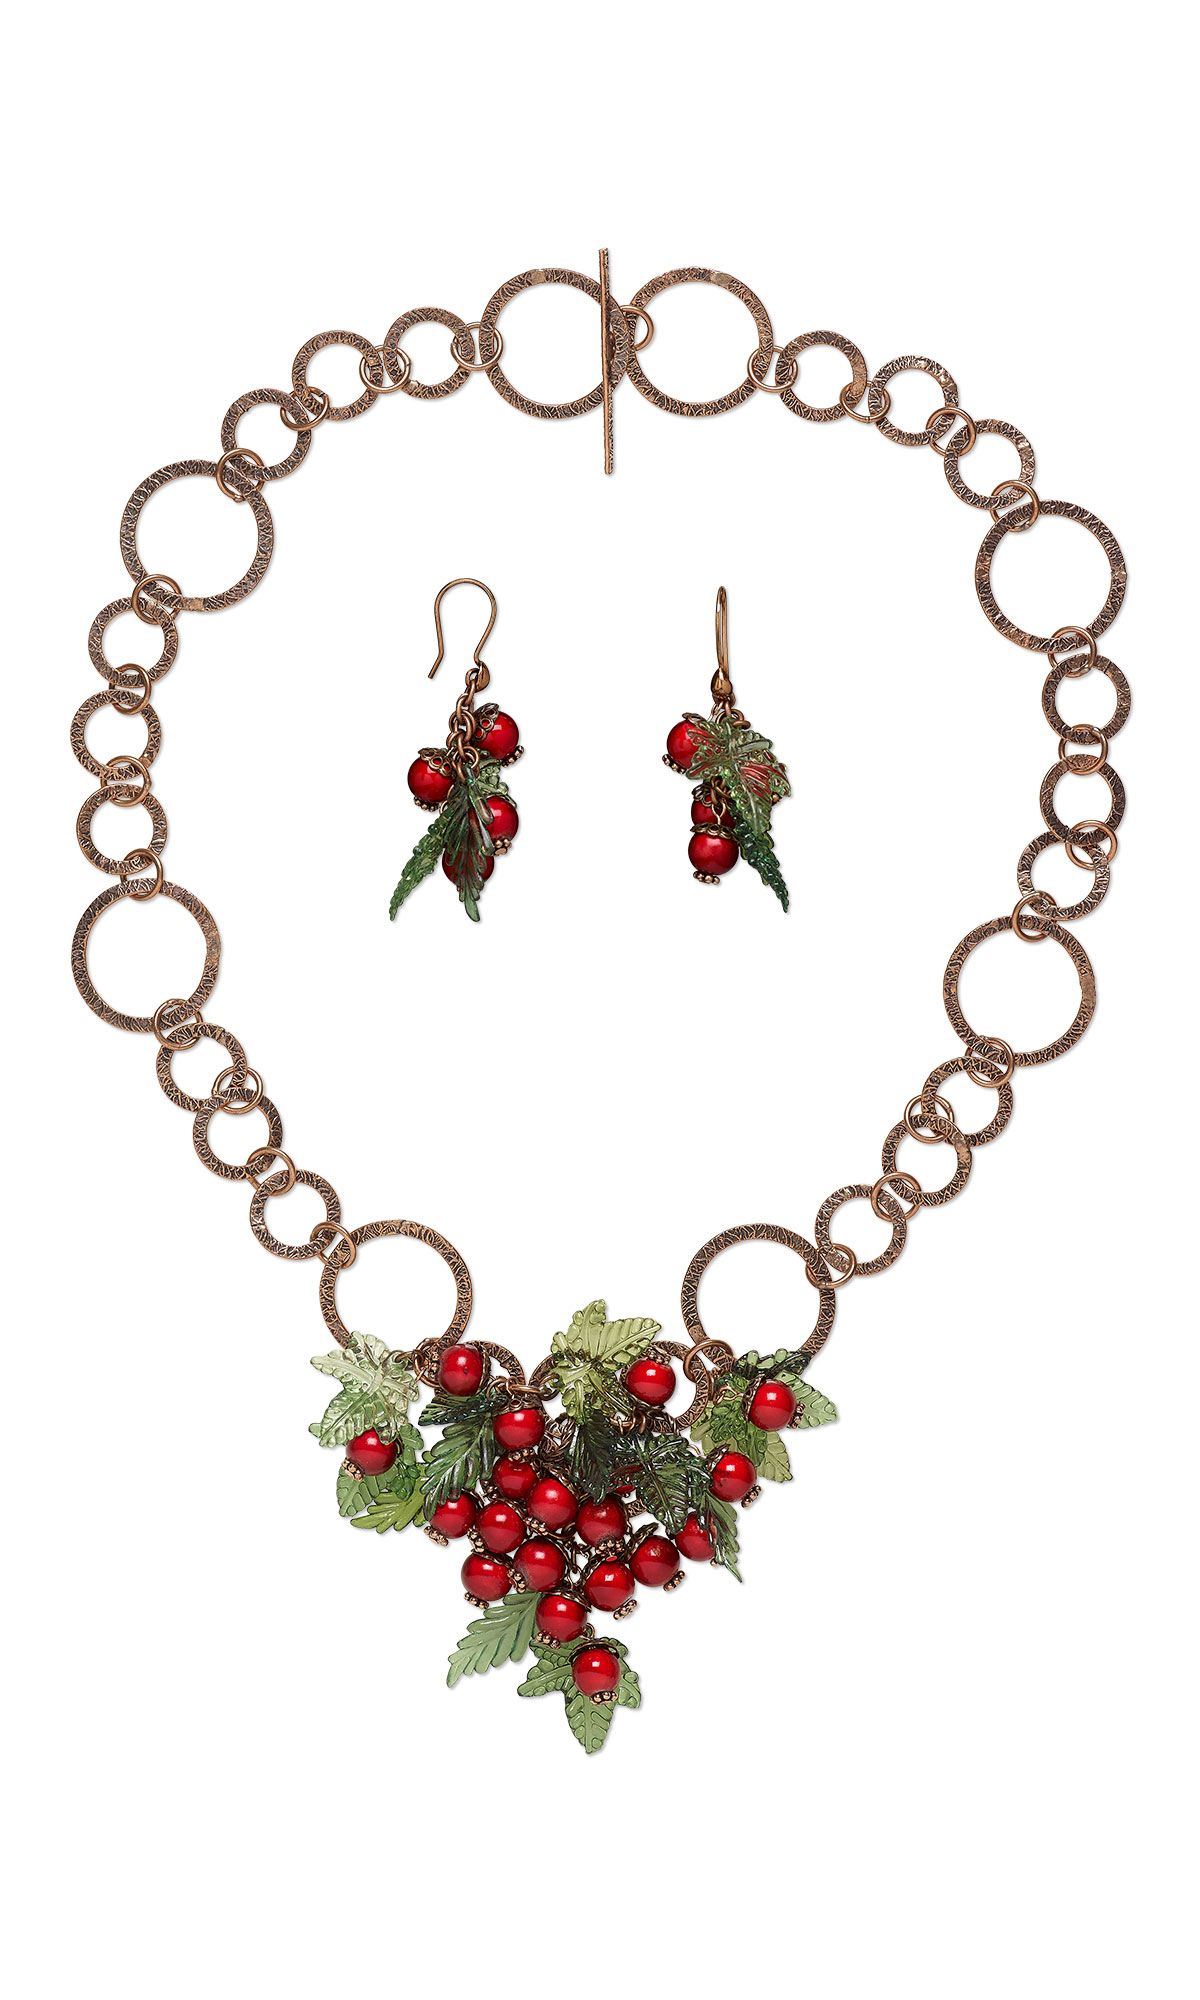 Holly Berry #ChristmasJewelry Project with FREE Step by Step Instructions  #diyjewelry #jewelrymaking #beading #accessories #accessorize #handmadejewelry